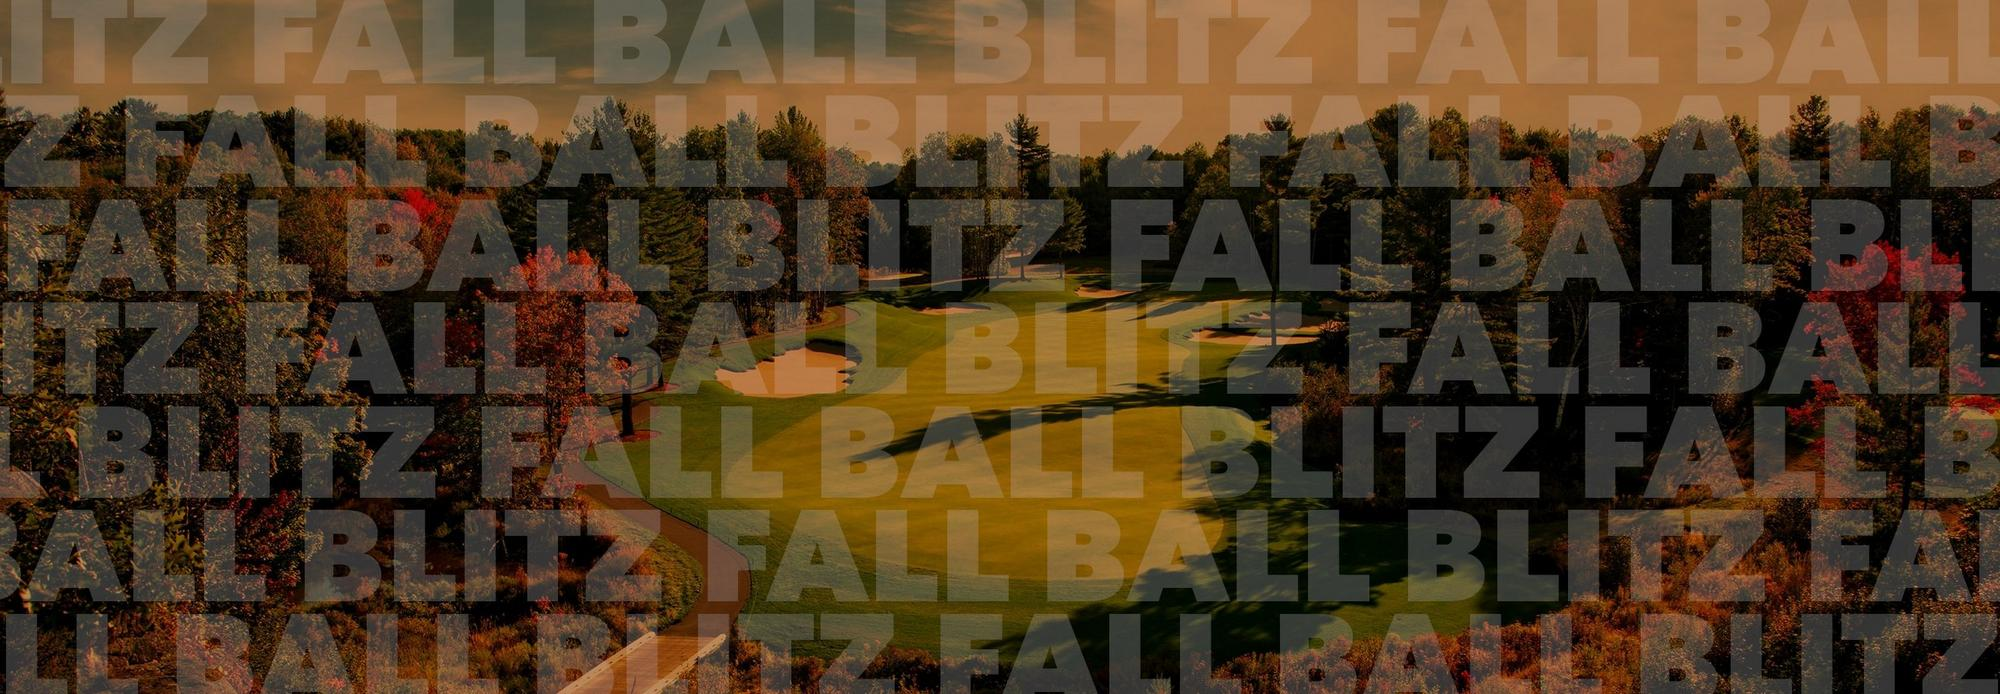 Fall Ball Blitz<br />Save up to 50%